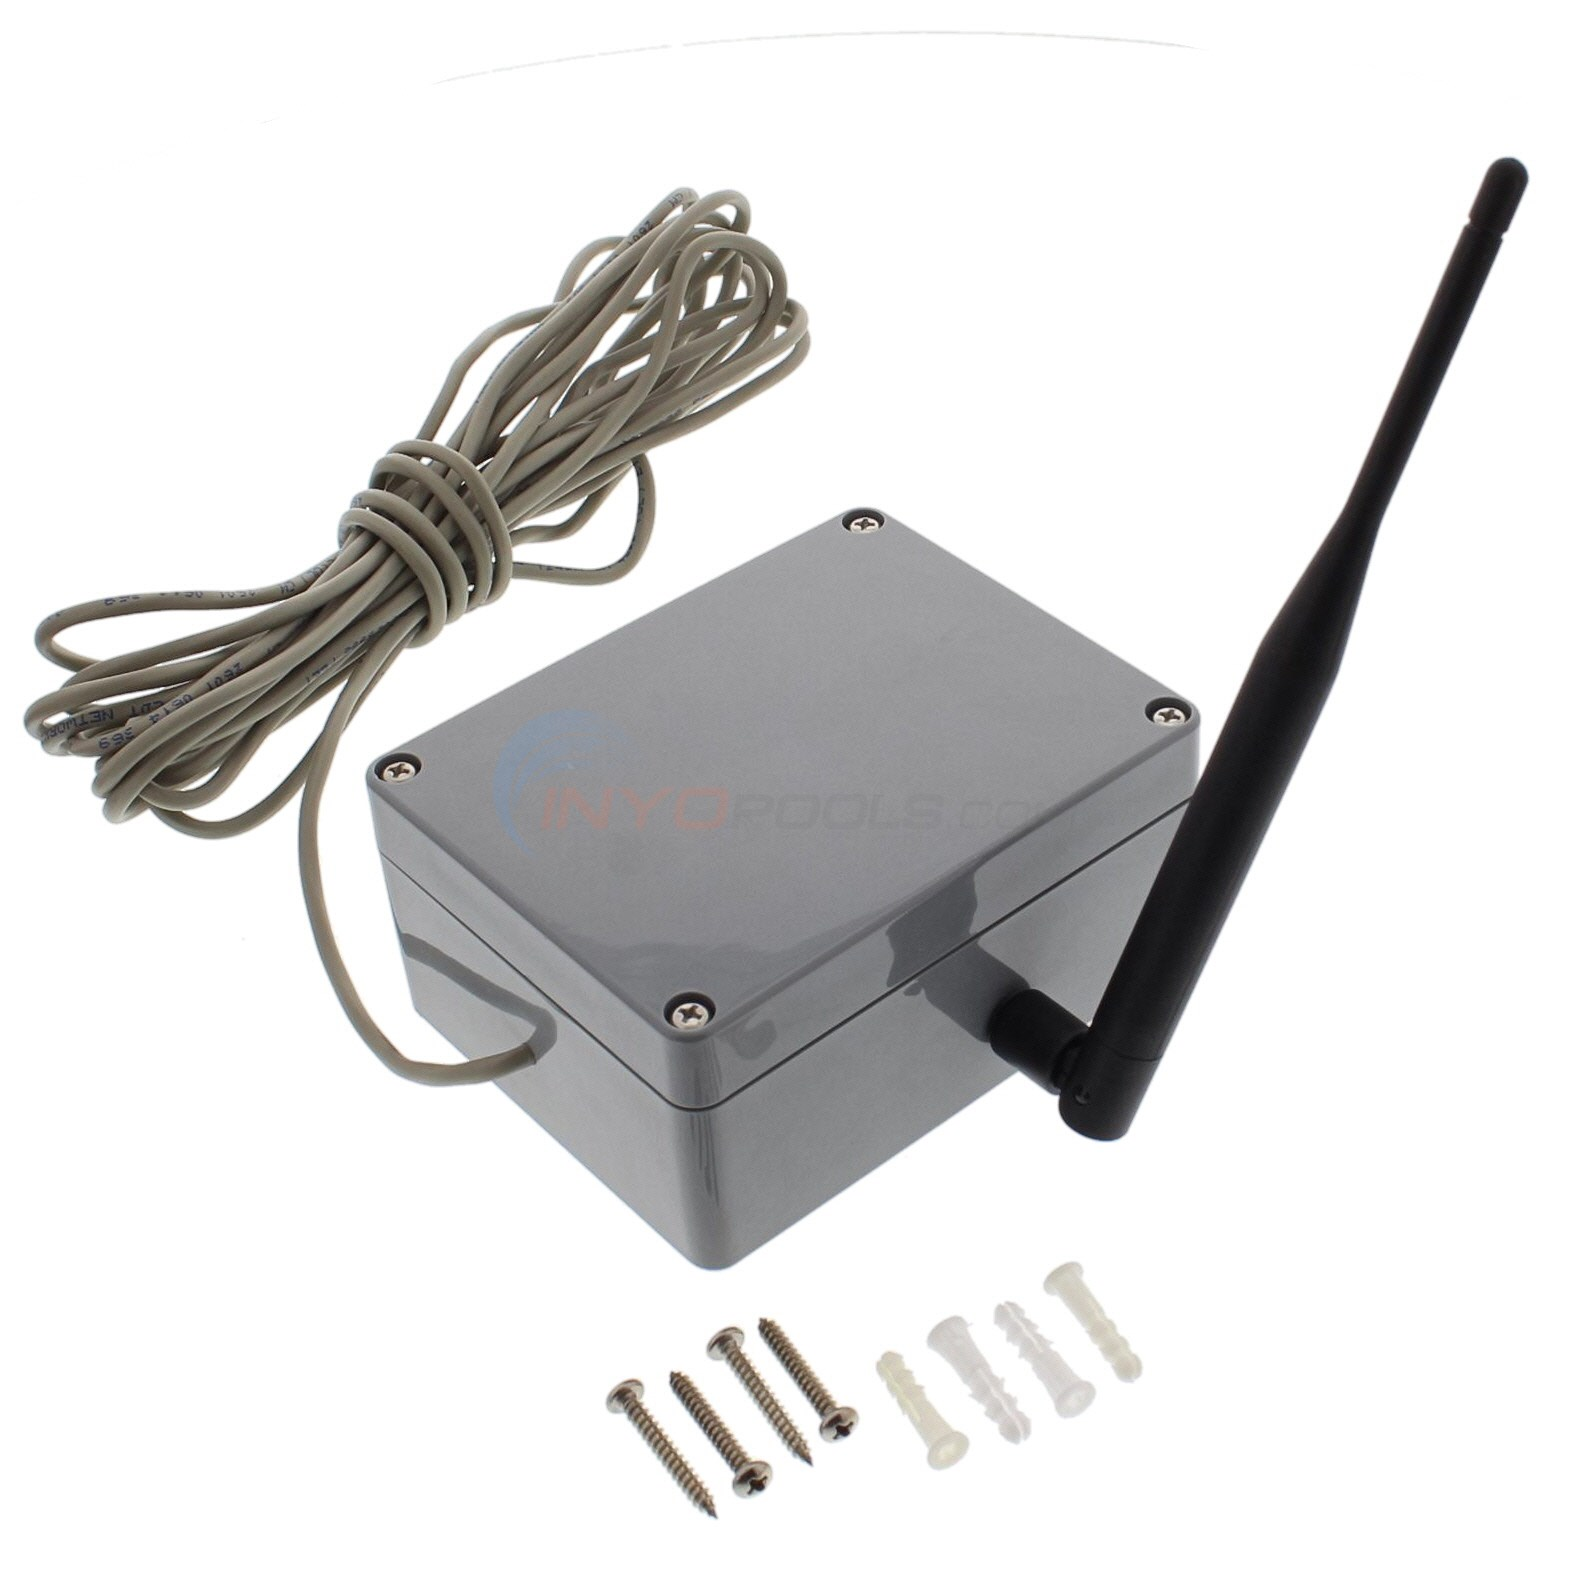 RS Wireless Outdoor J-Box Kit